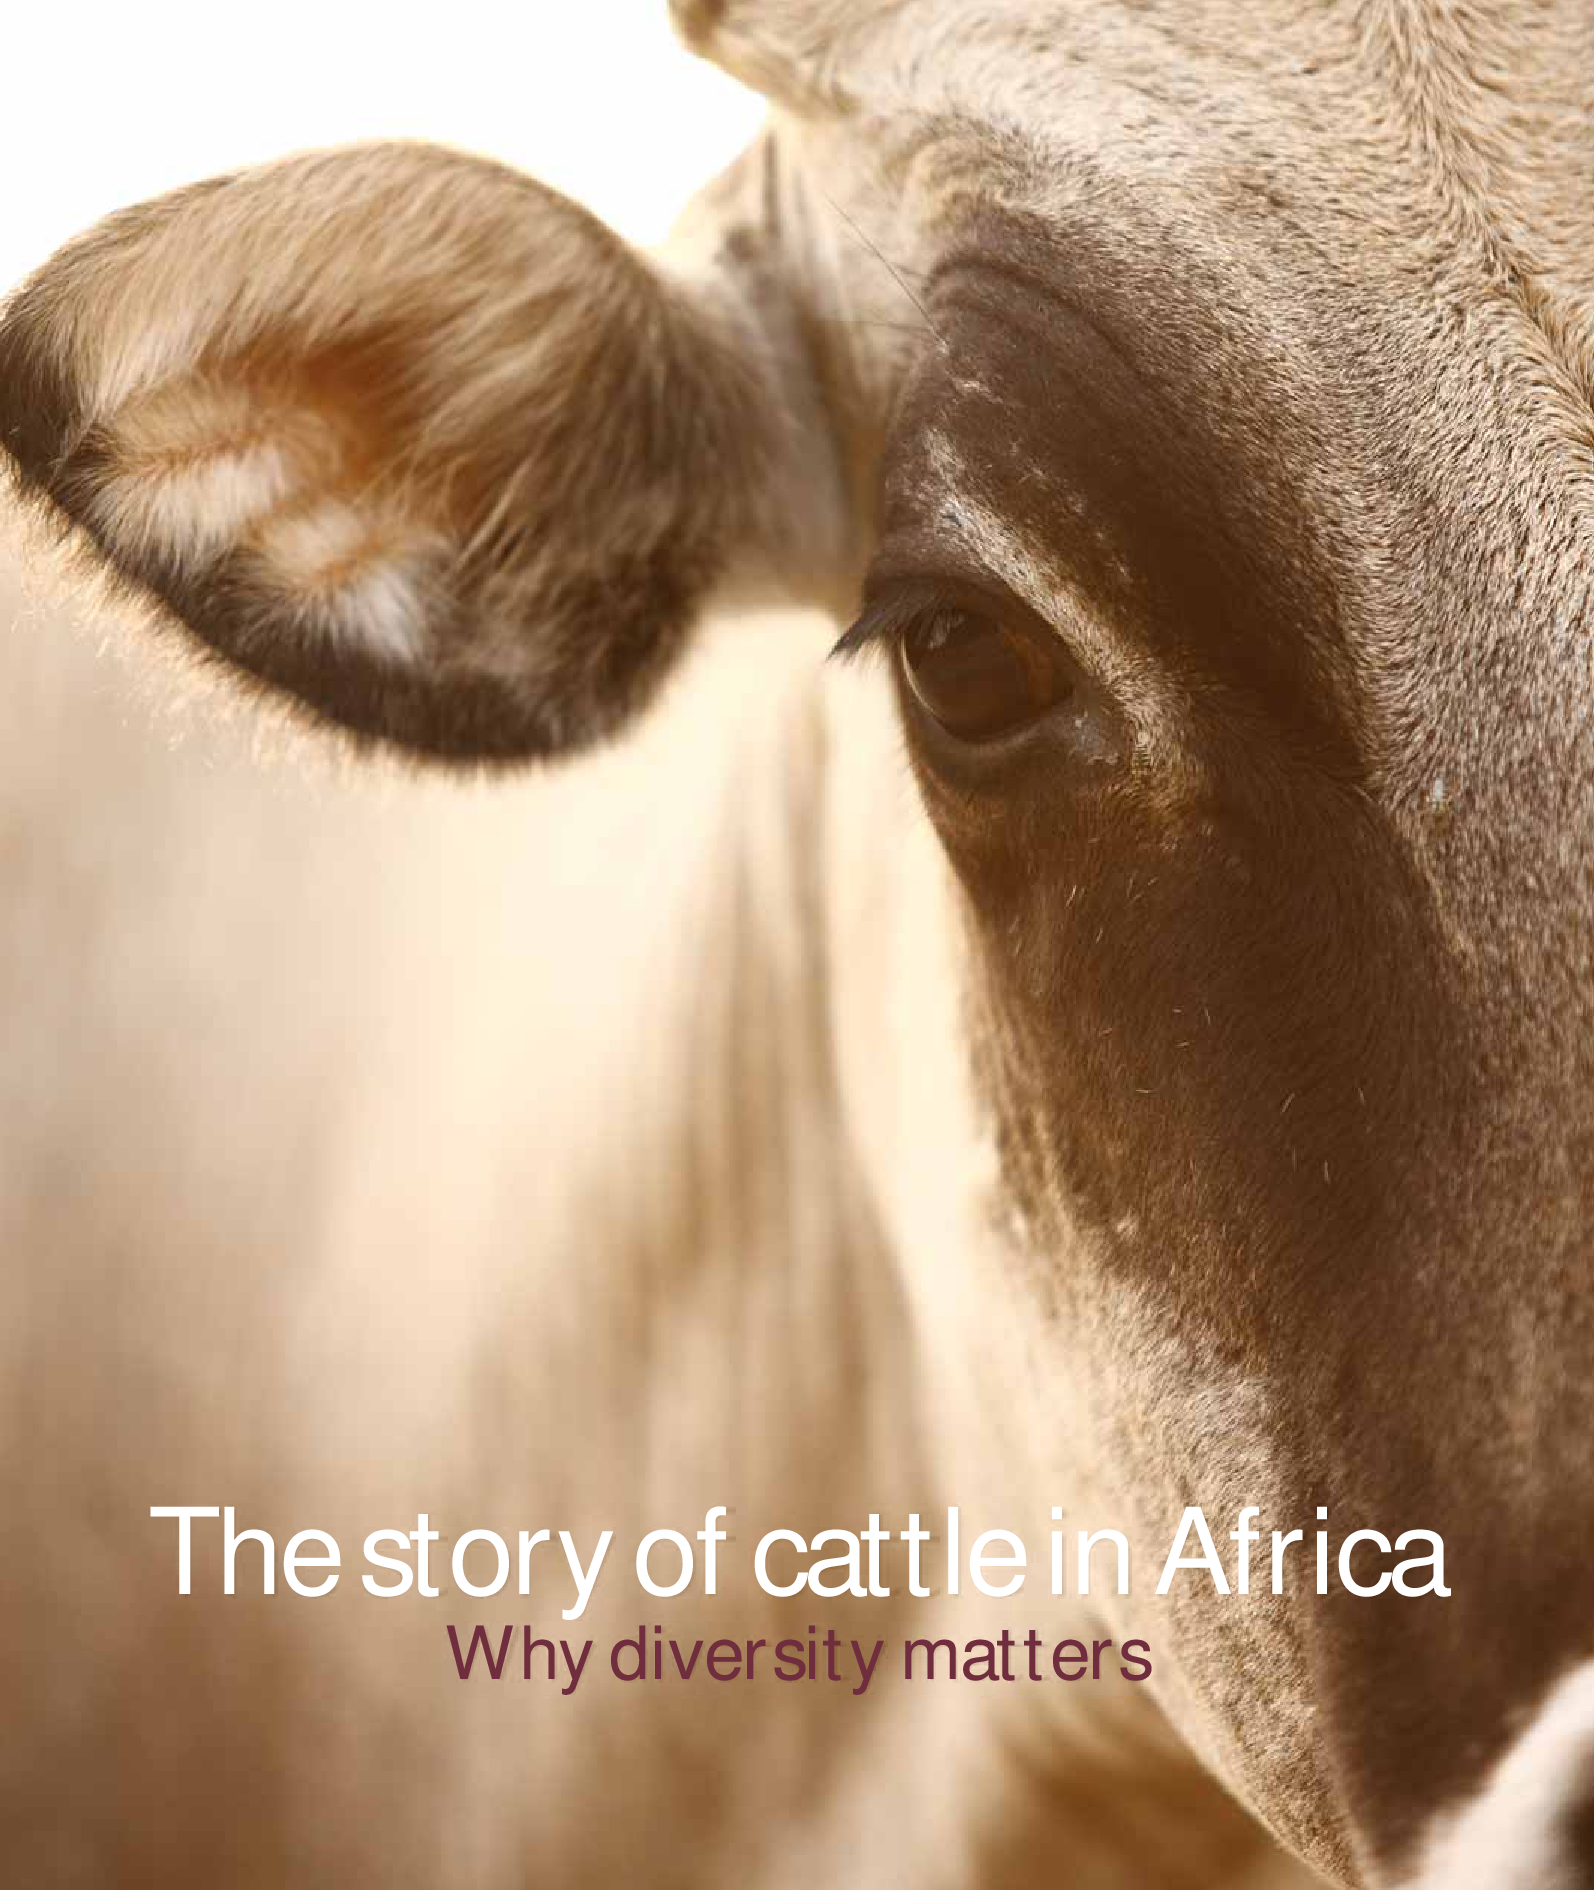 The story of cattle in Africa, Why diversity matters